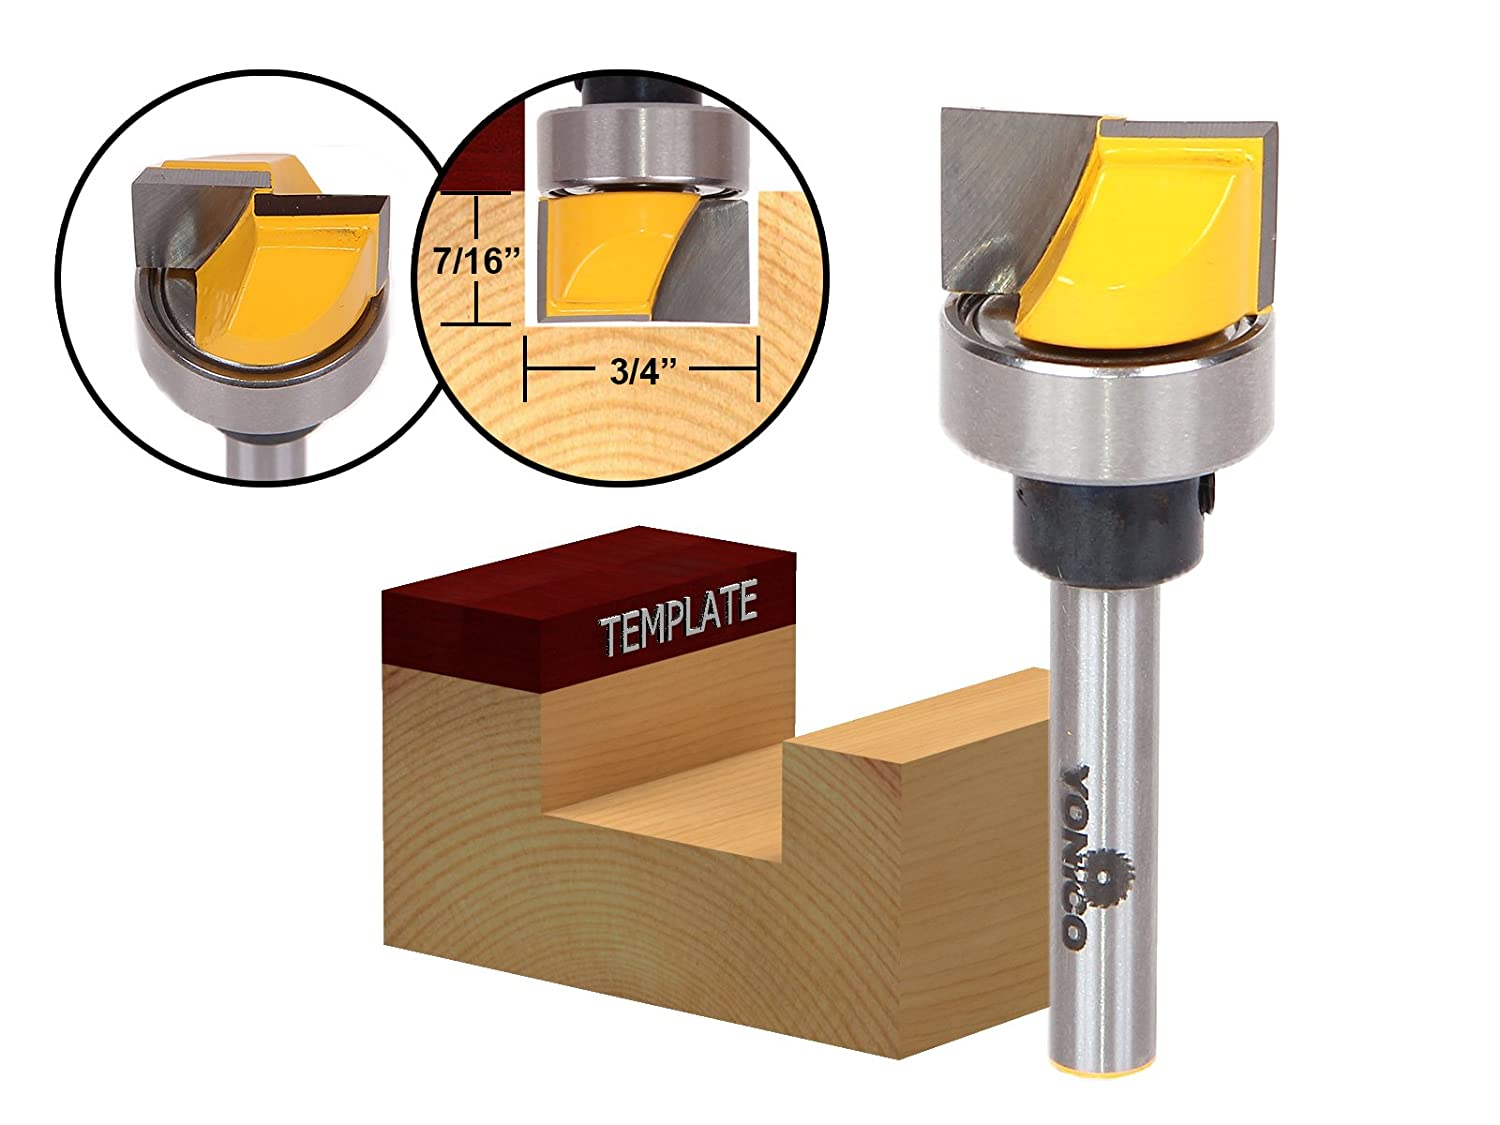 Yonico 14170q Hinge Mortisetemplate Router Bit With 34 Inch X 7